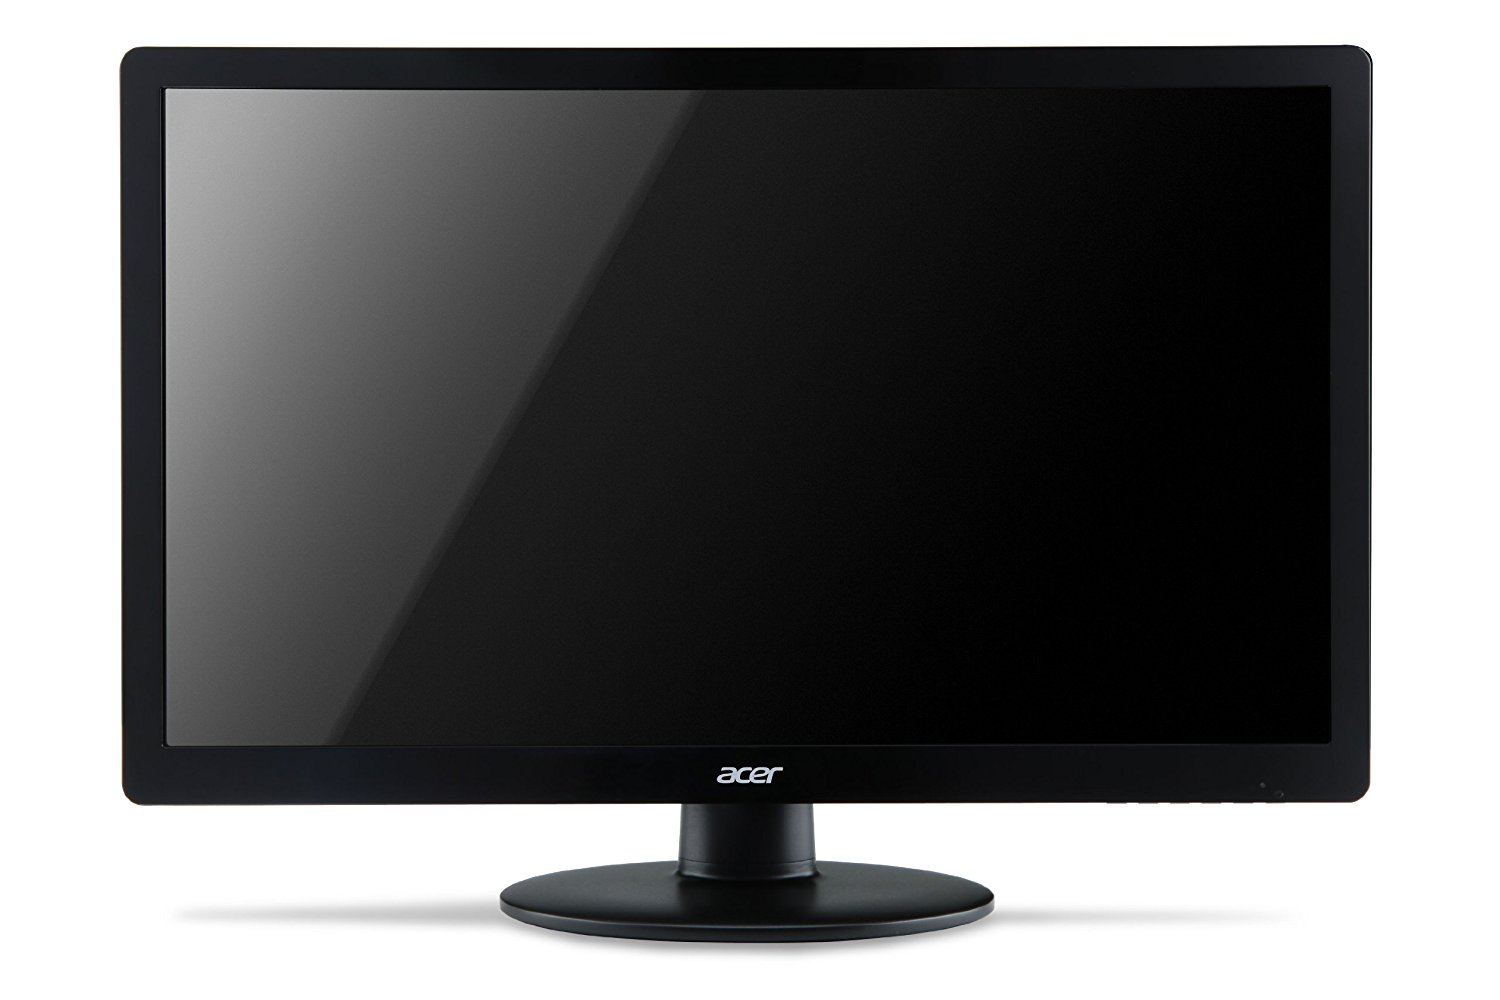 Acer 21.5-Inch Widescreen LCD Monitor